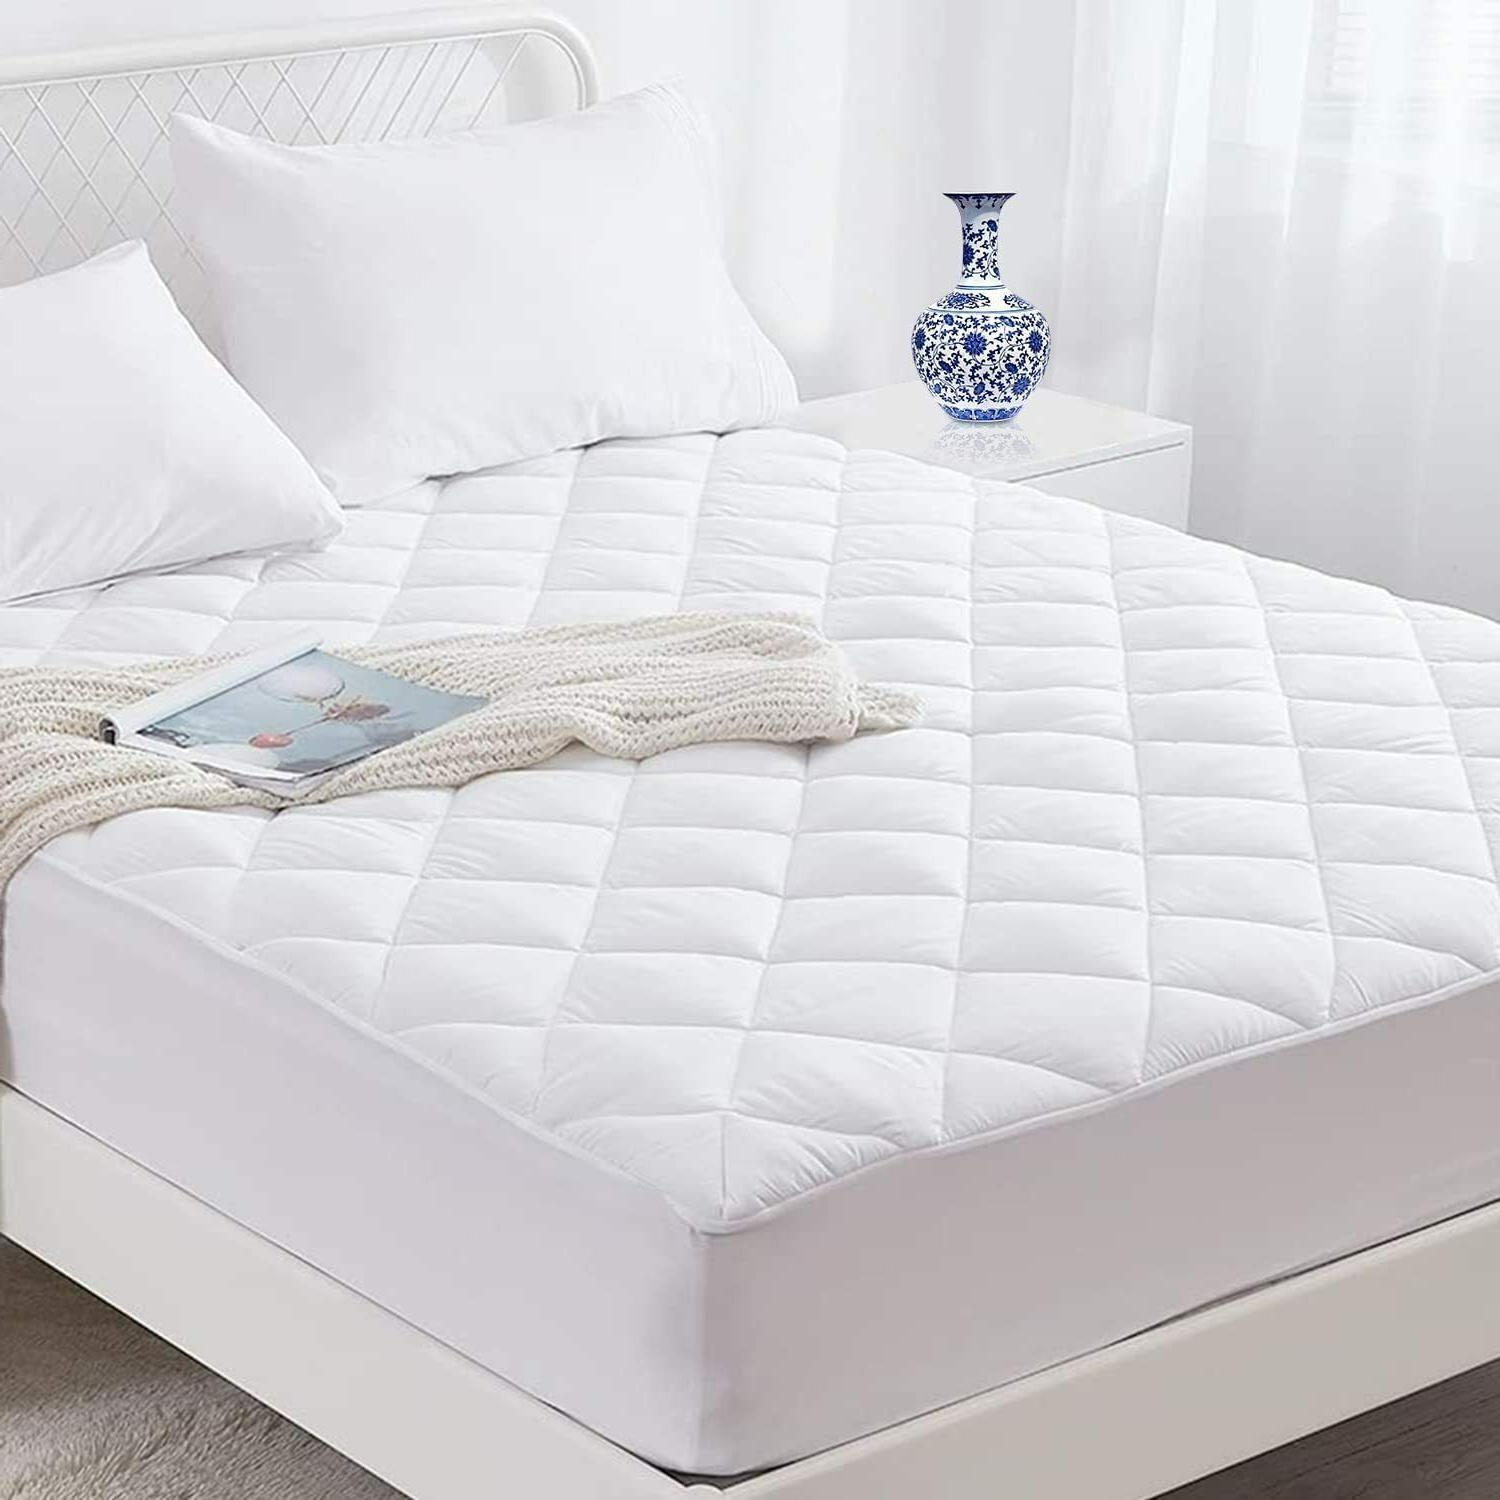 fitted mattress pad cover protector deep pocket